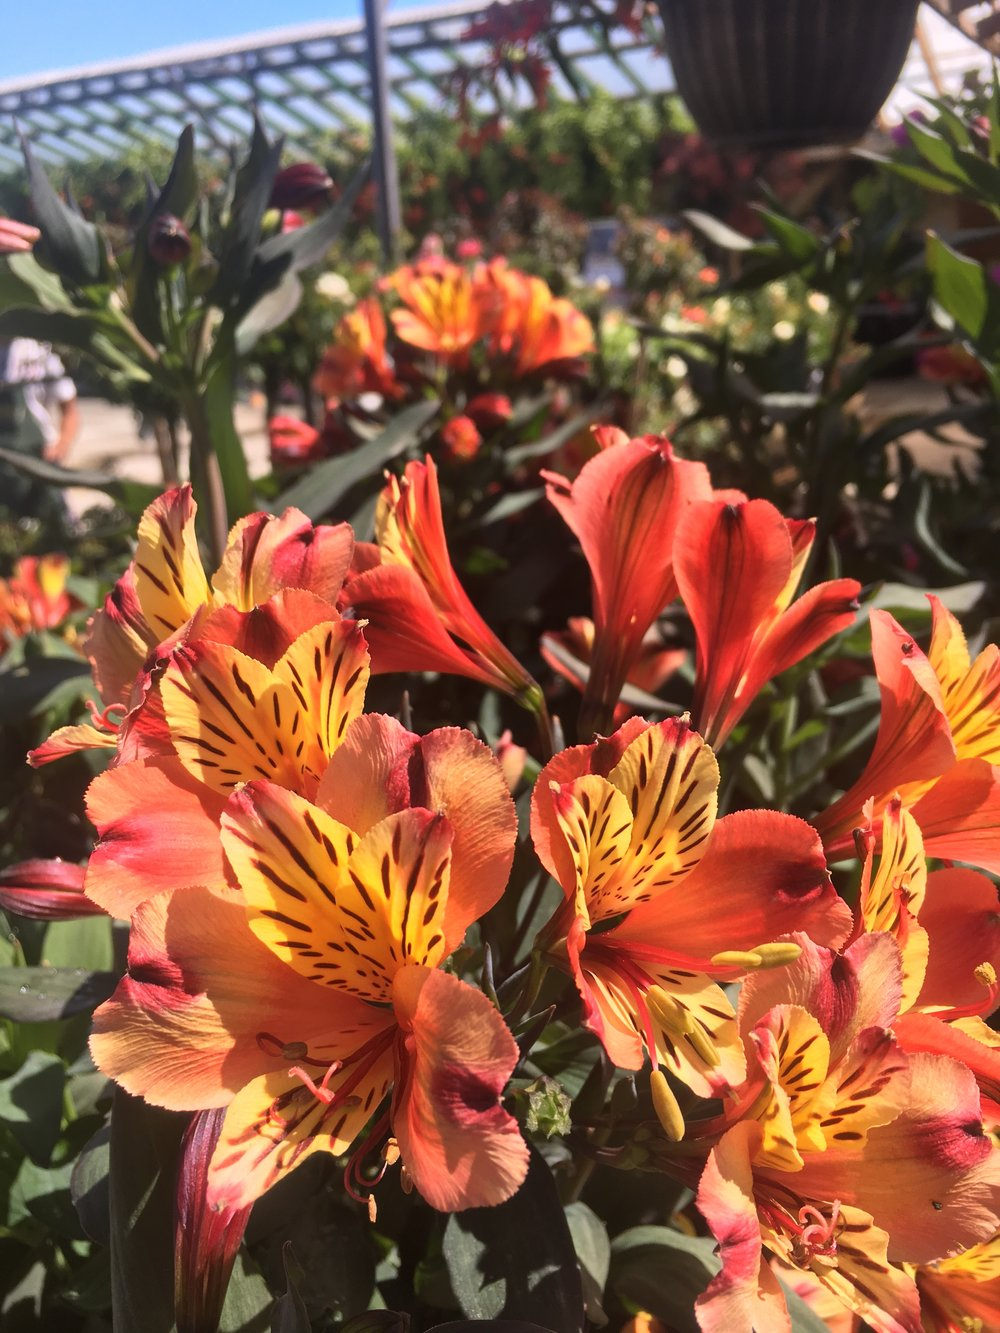 Alstroemeria 'Indian summer'  is a rare black foliage Peruvian lily!!!